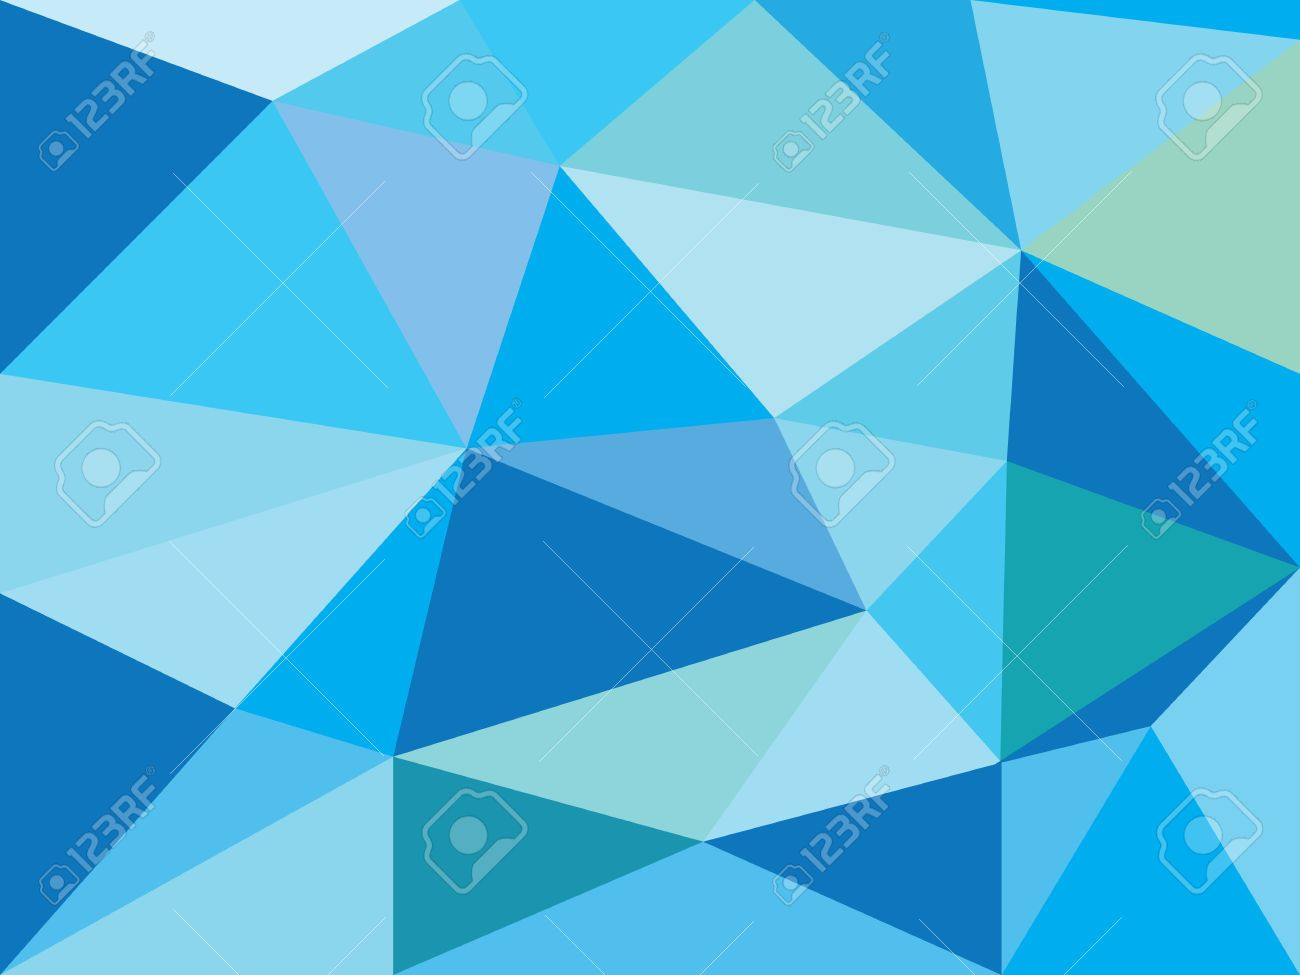 Simple Blue Abstract Prism Background Stock